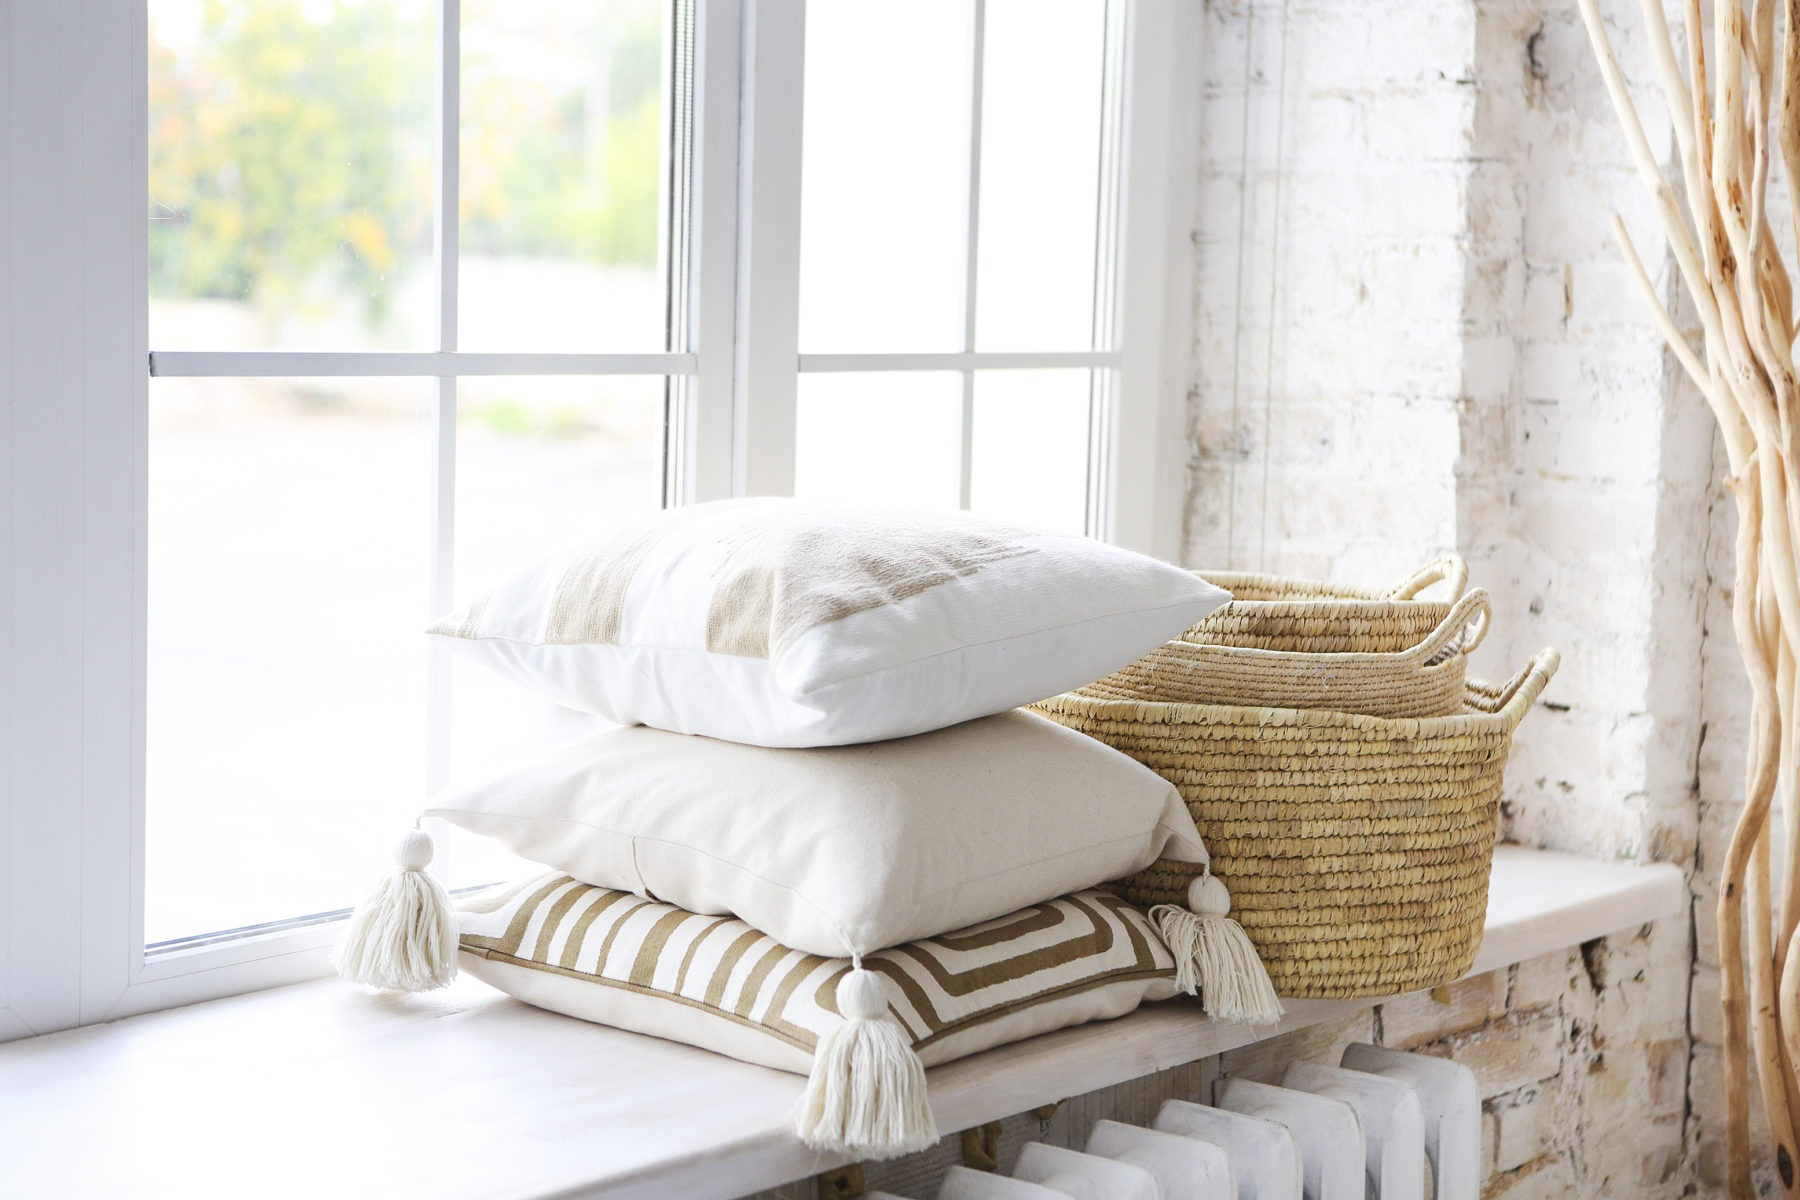 Window sill with light pillows